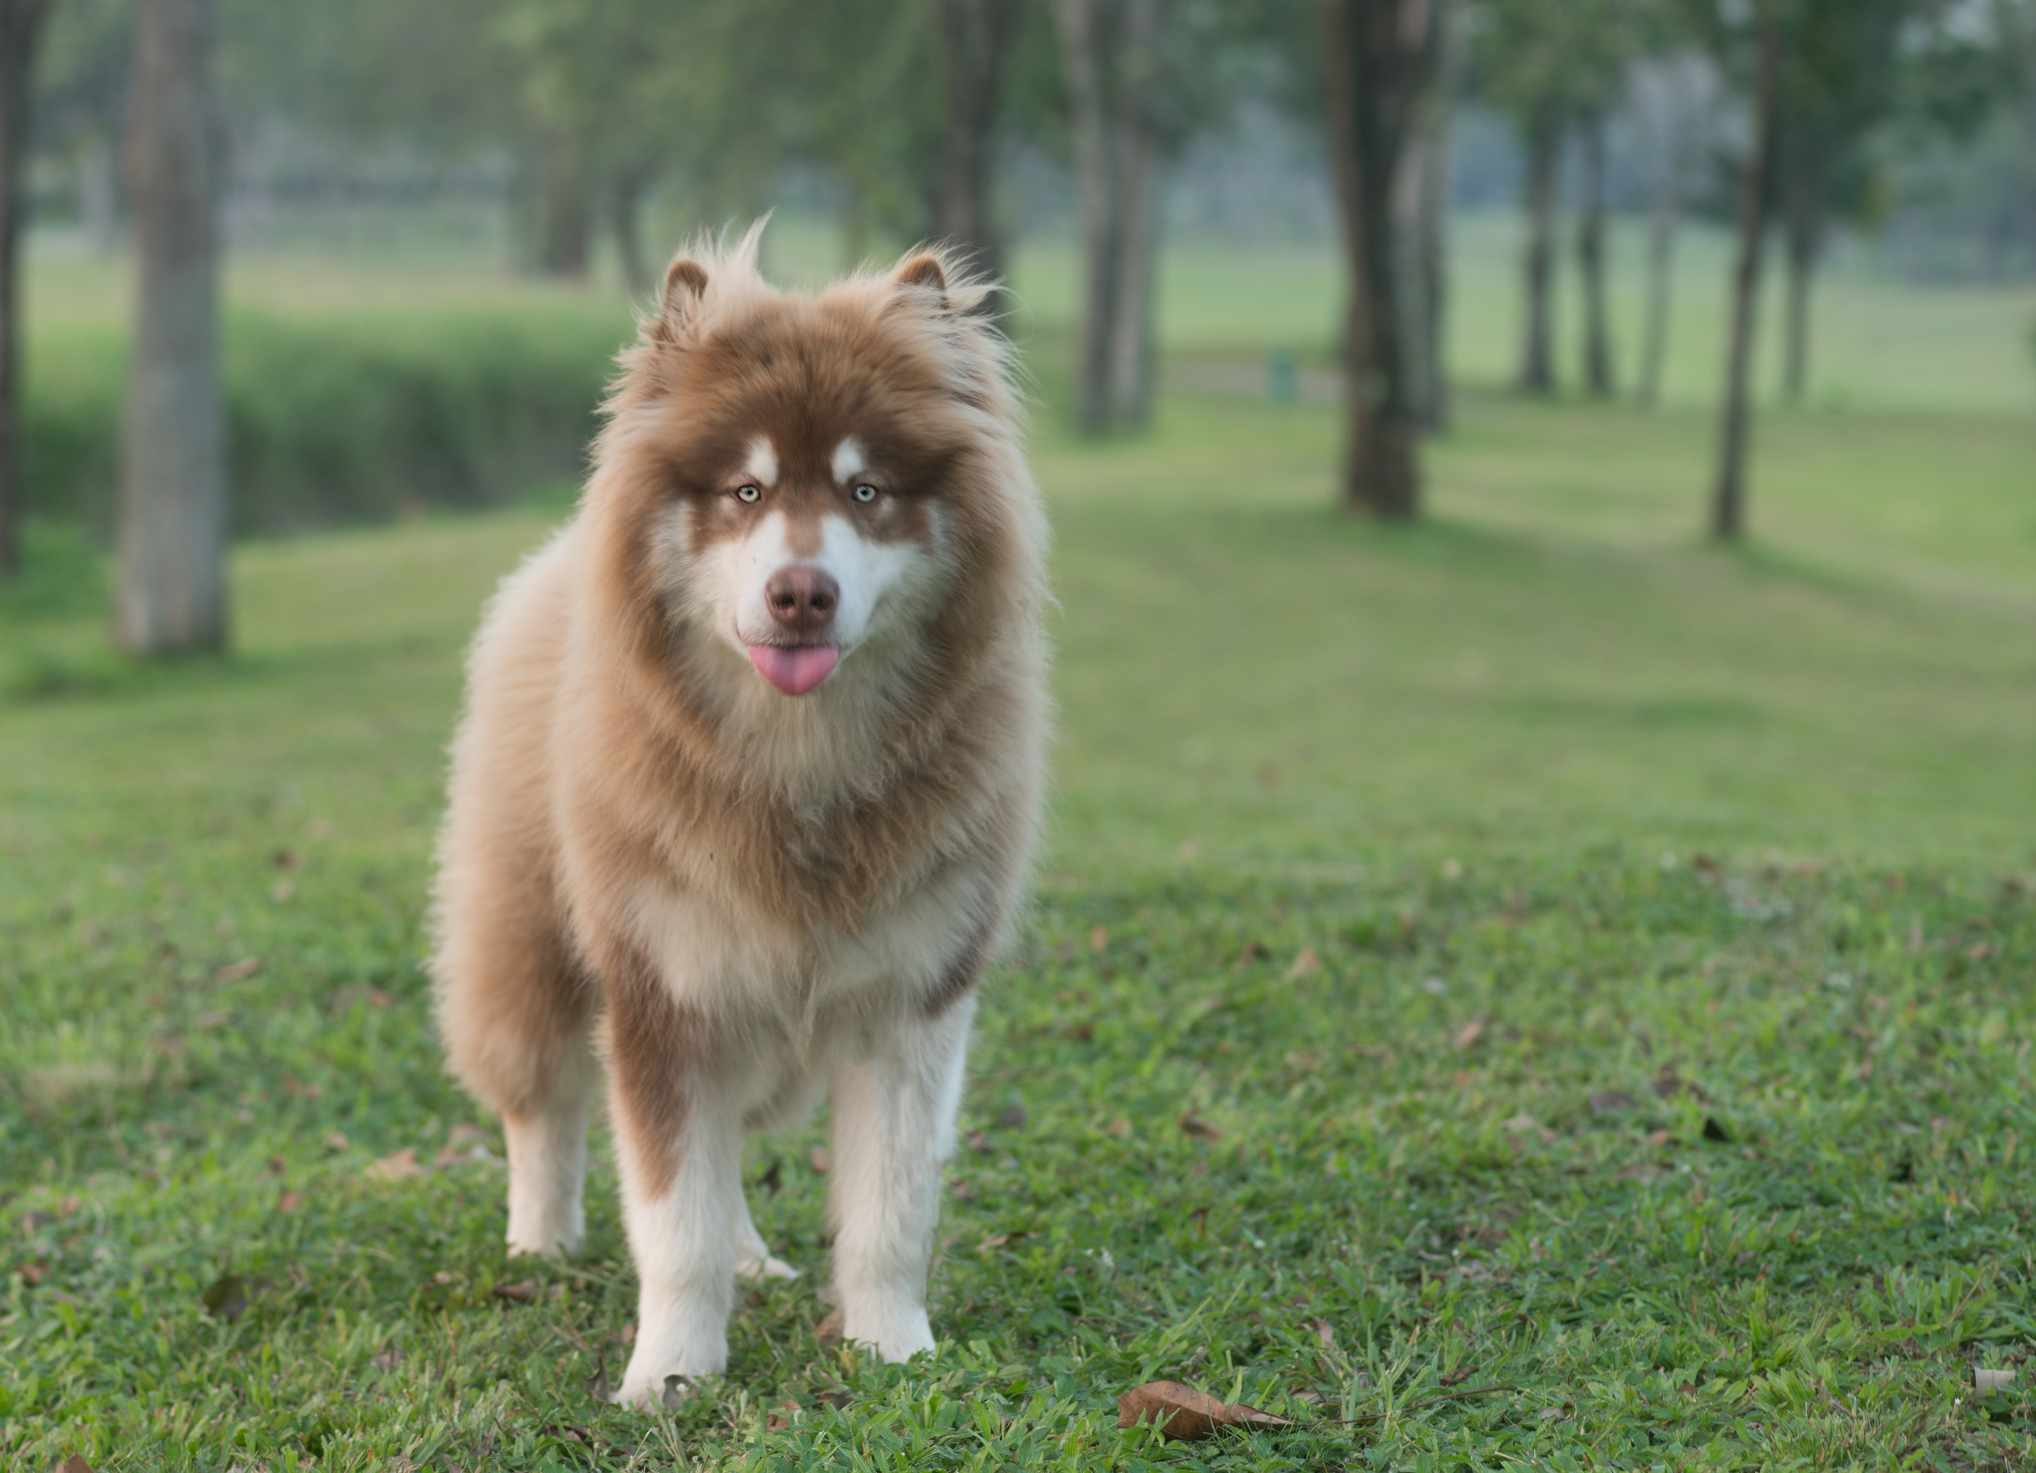 Brown Alaskan Malamute with tongue out standing in a grassy field.